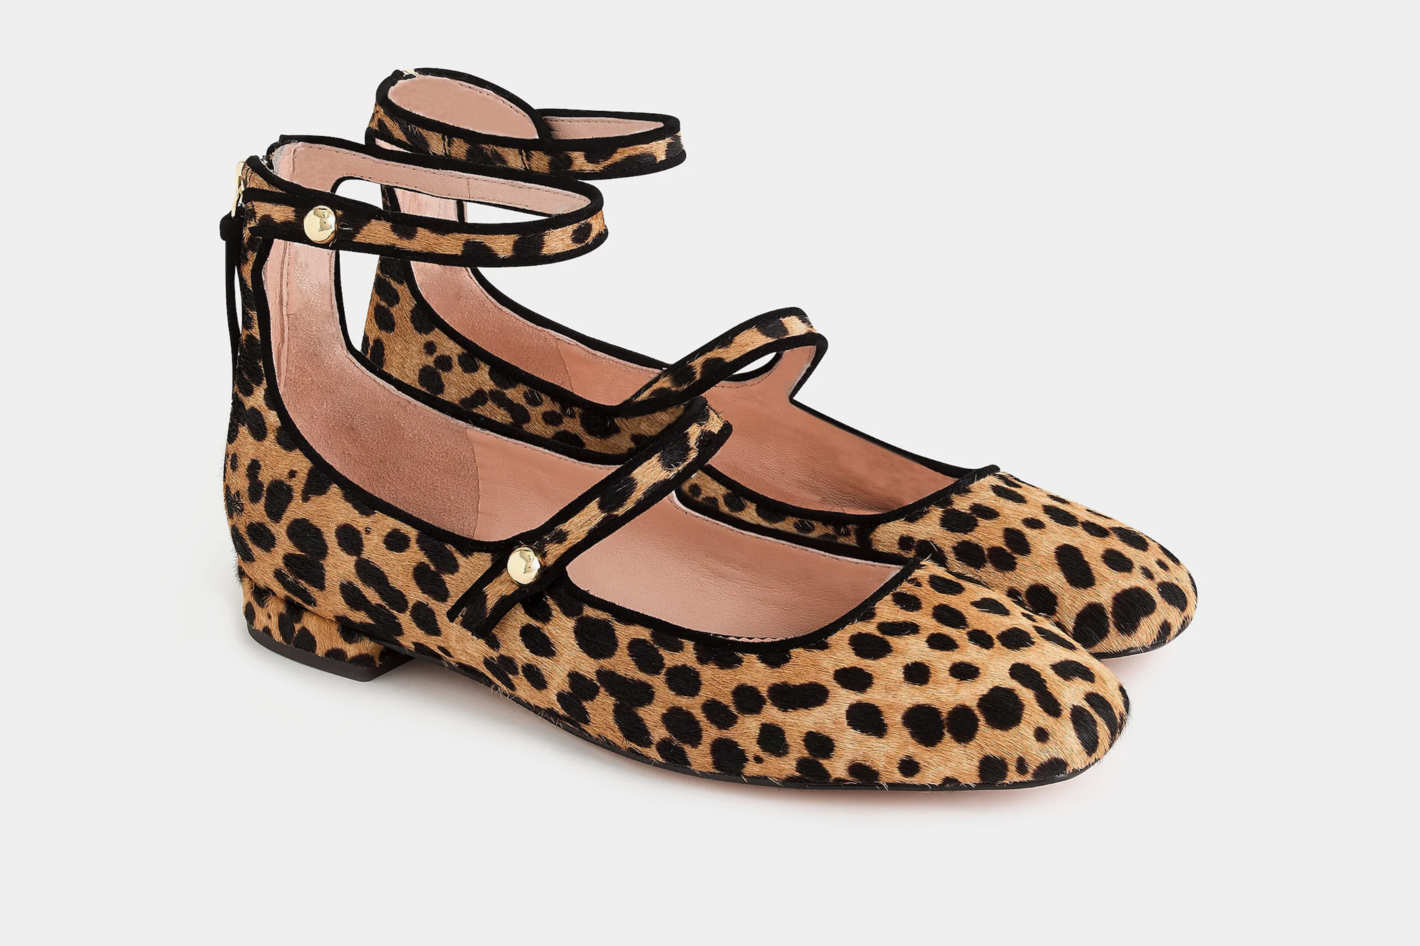 J.Crew Poppy Two-Strap Ballet Flats in Leopard Calf Hair